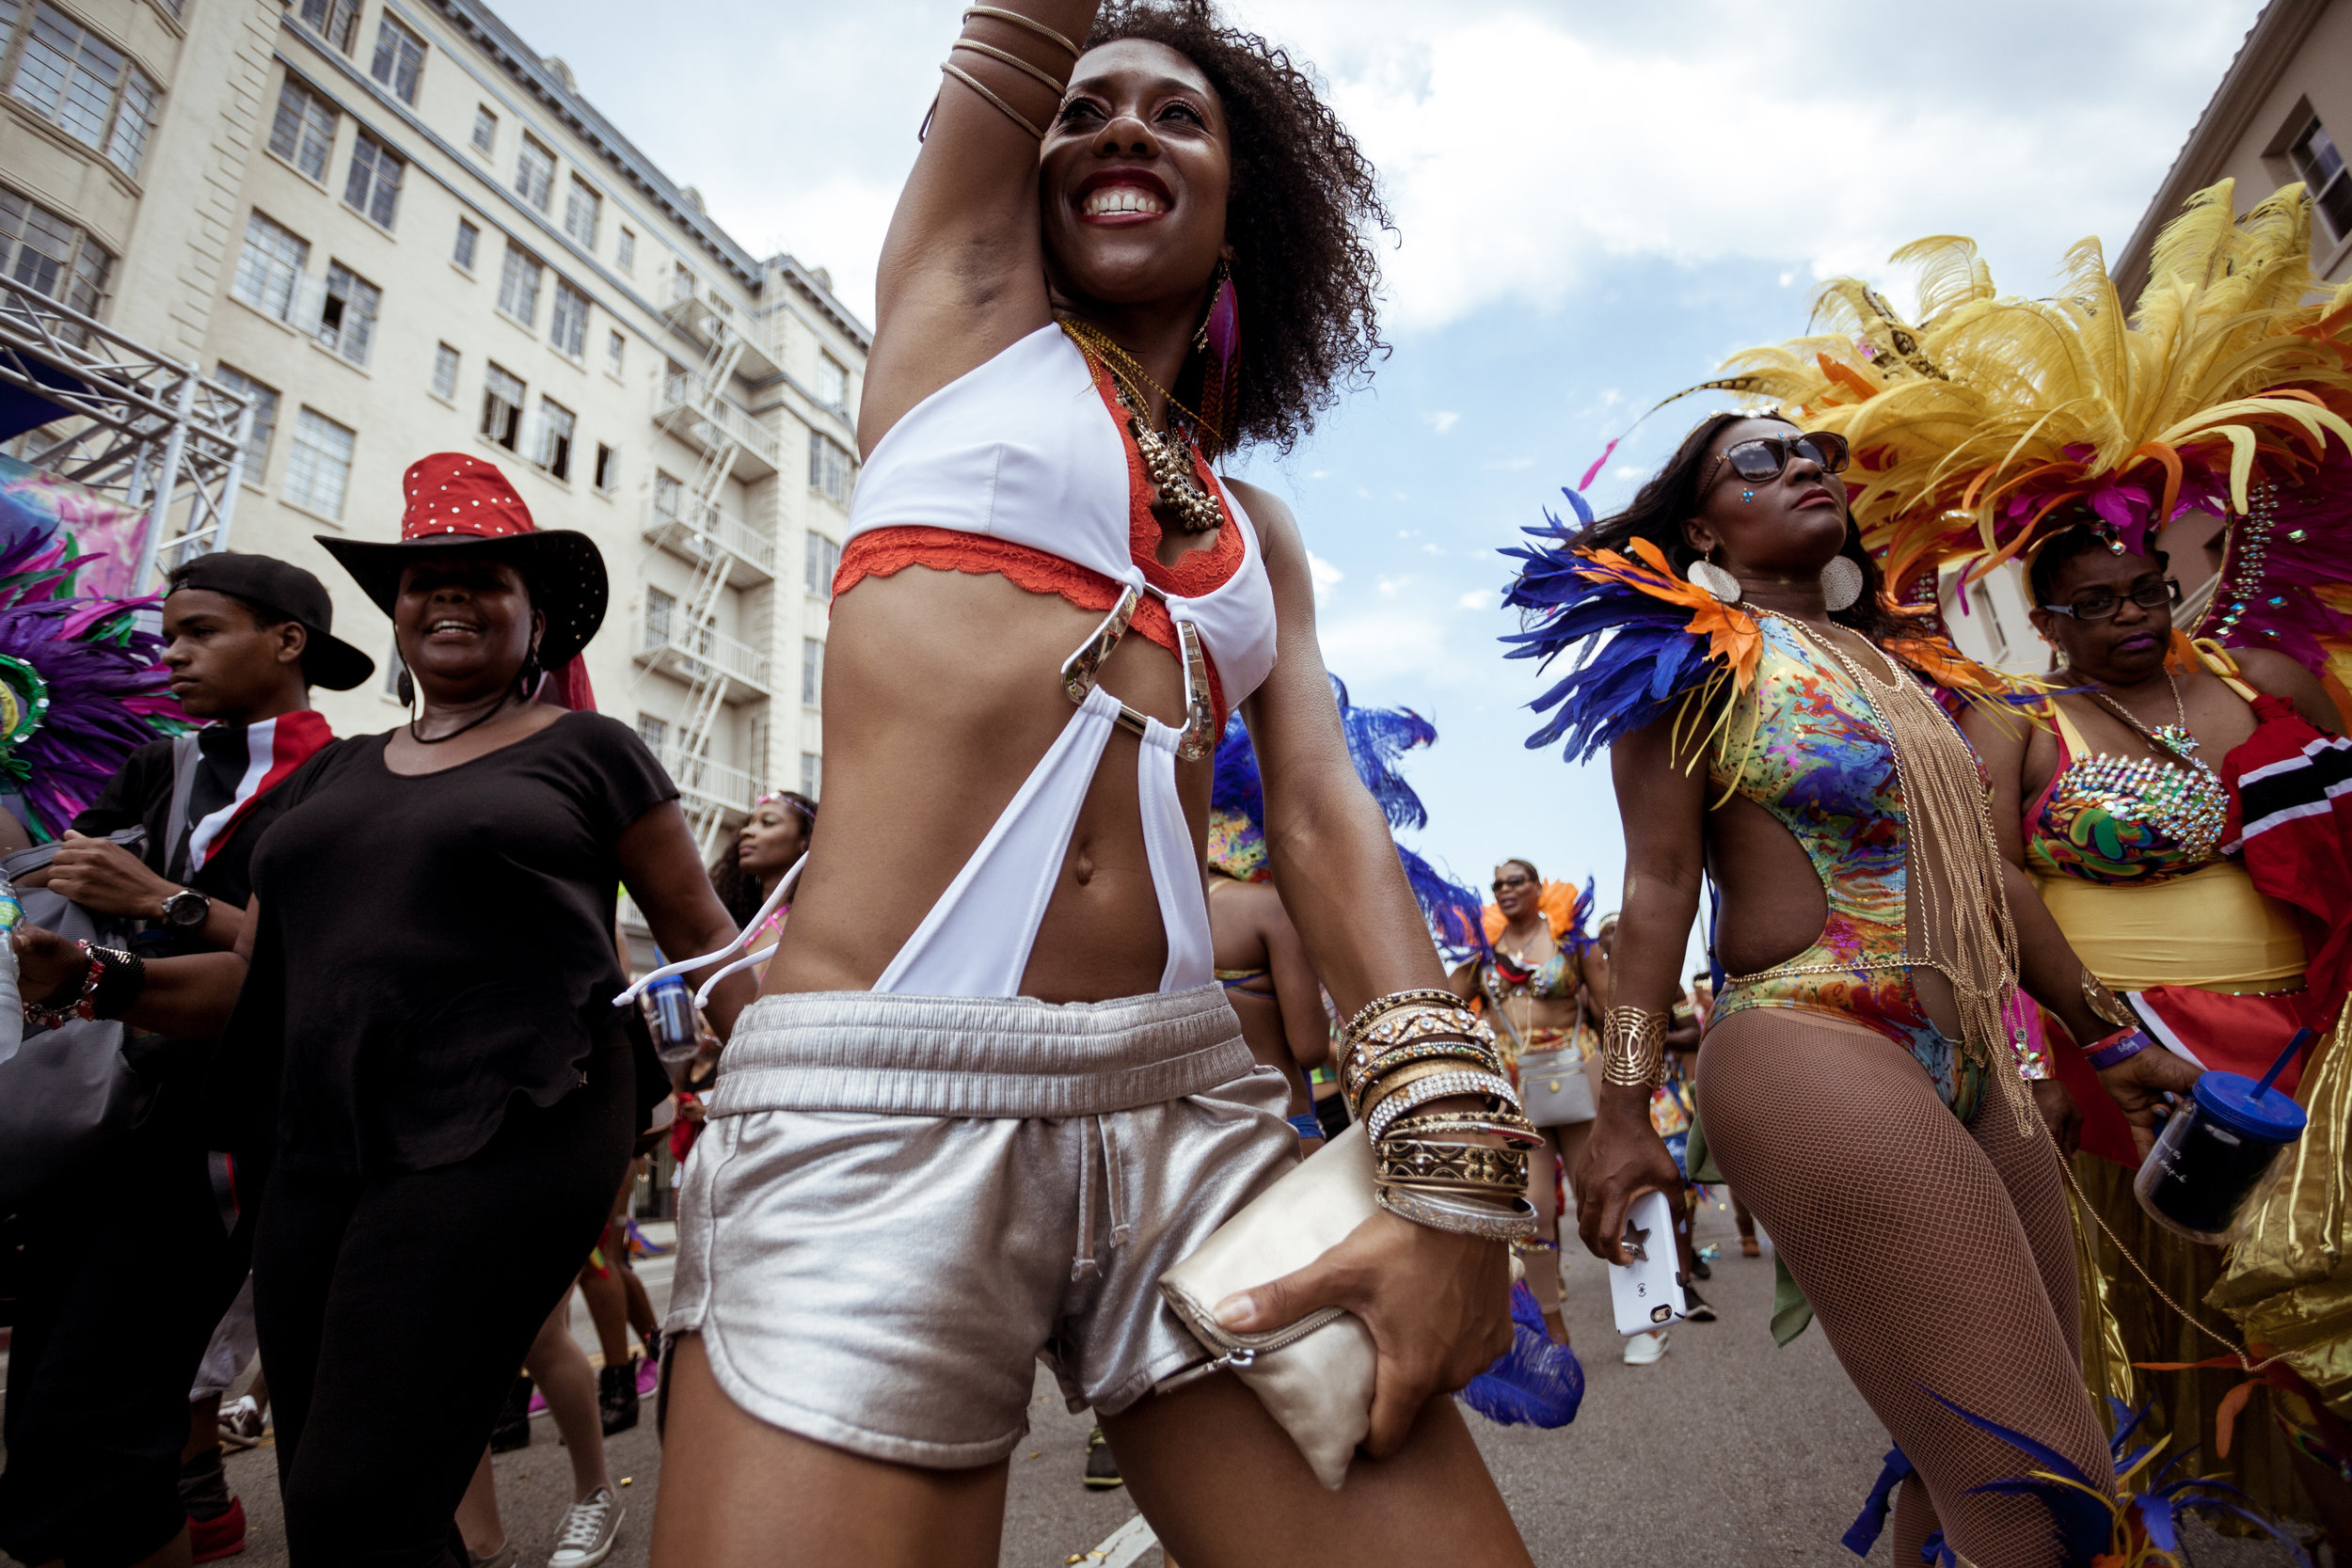 Chacon Images_Carnaval_Print-5834.jpg